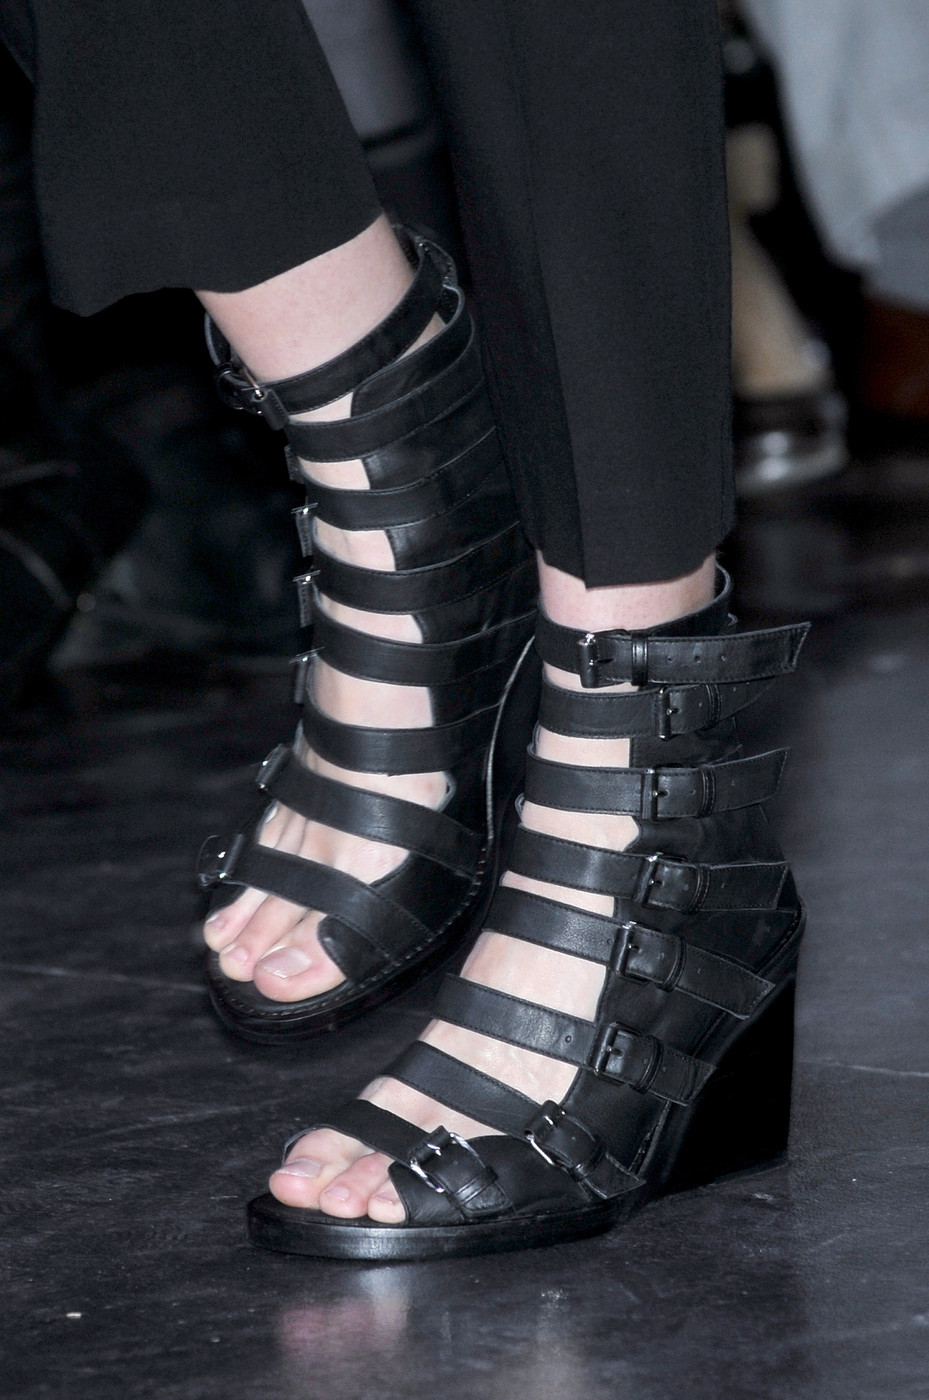 Ann Demeulemeester shoes from Spring/Summer 2010